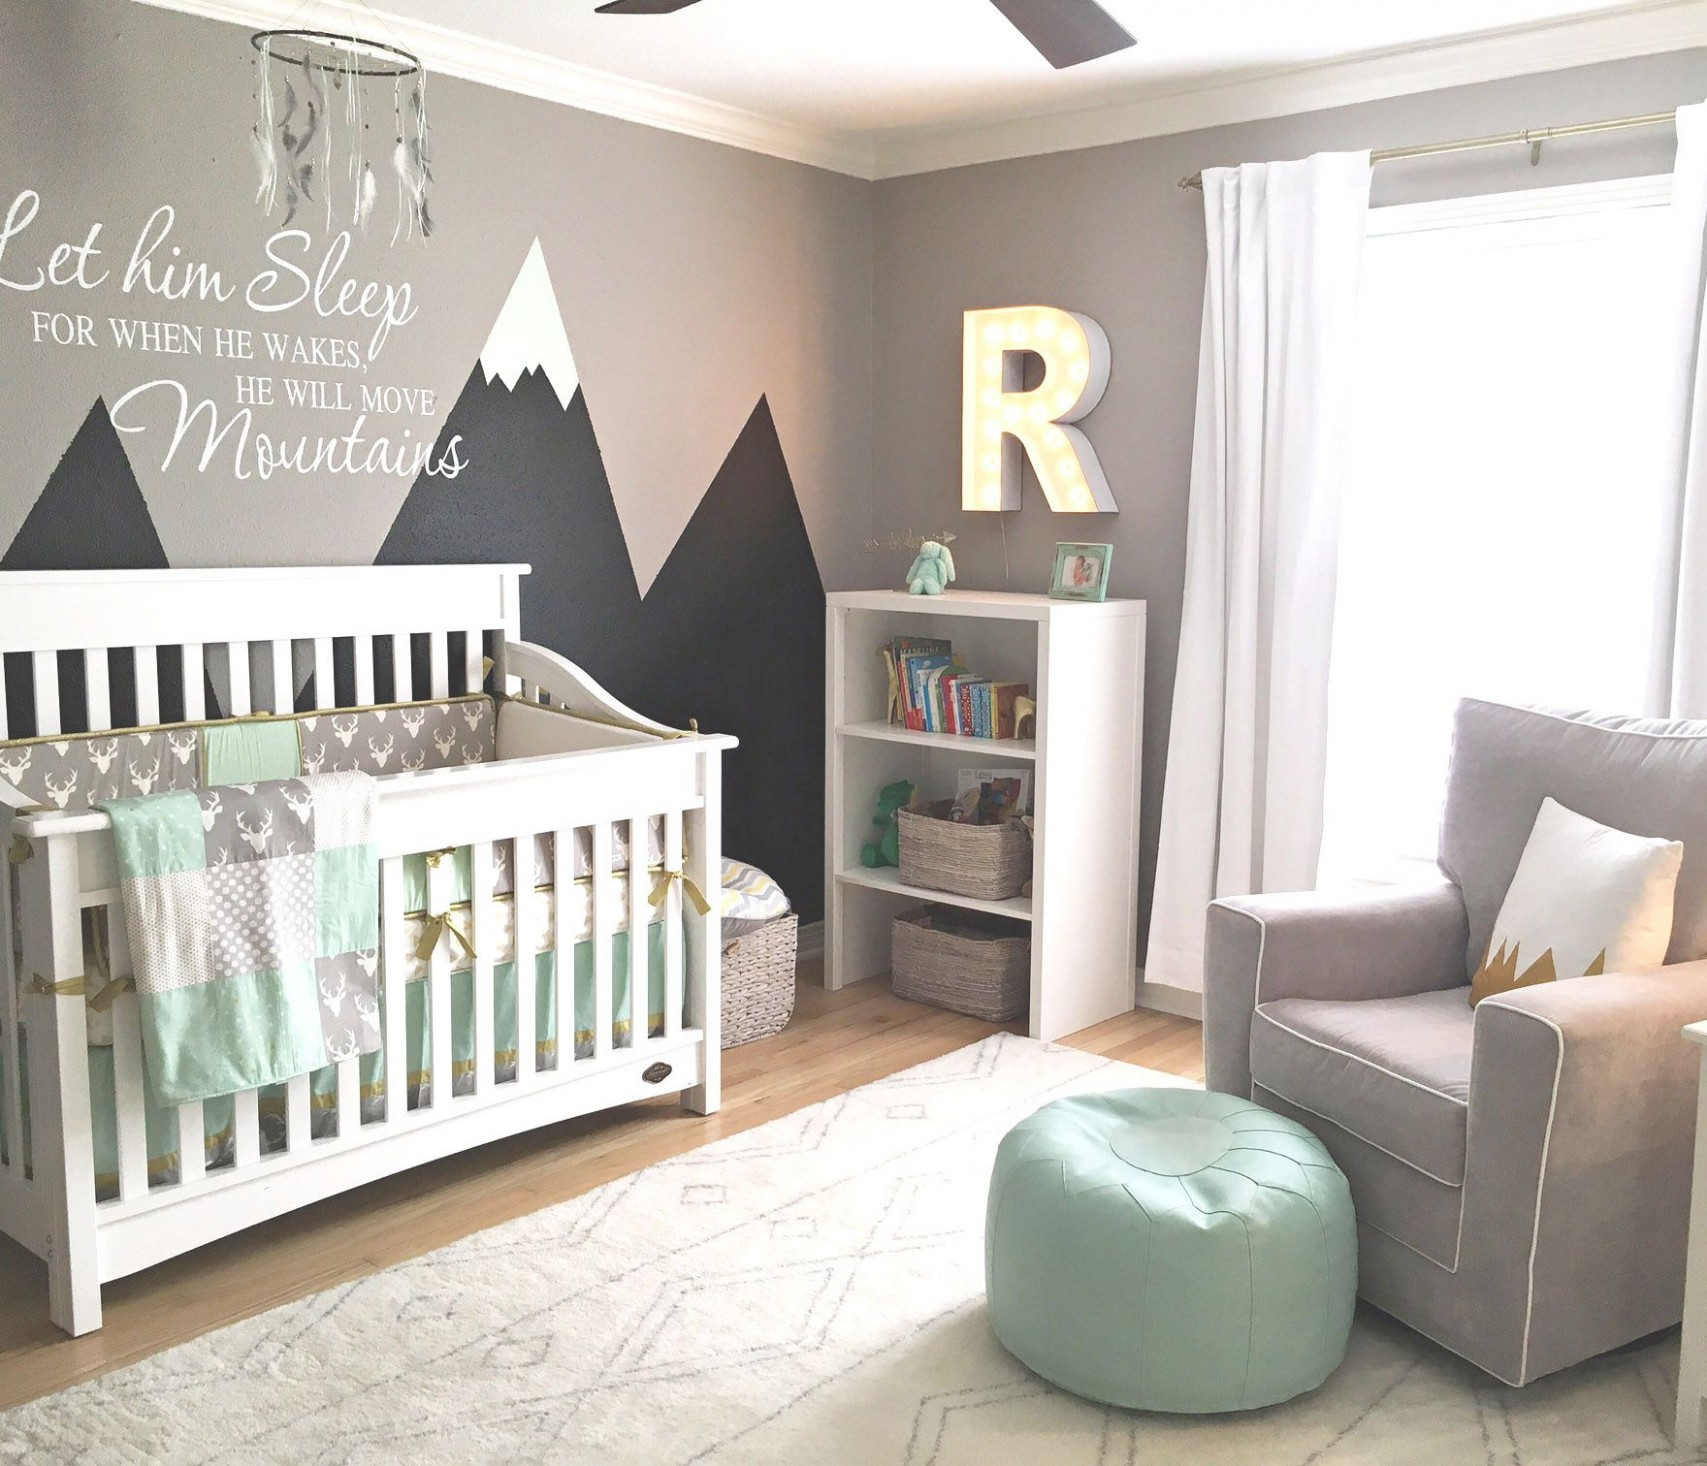 Design Reveal: Mountain-Inspired Nursery - Project Nursery  Baby  - Baby Room Themes